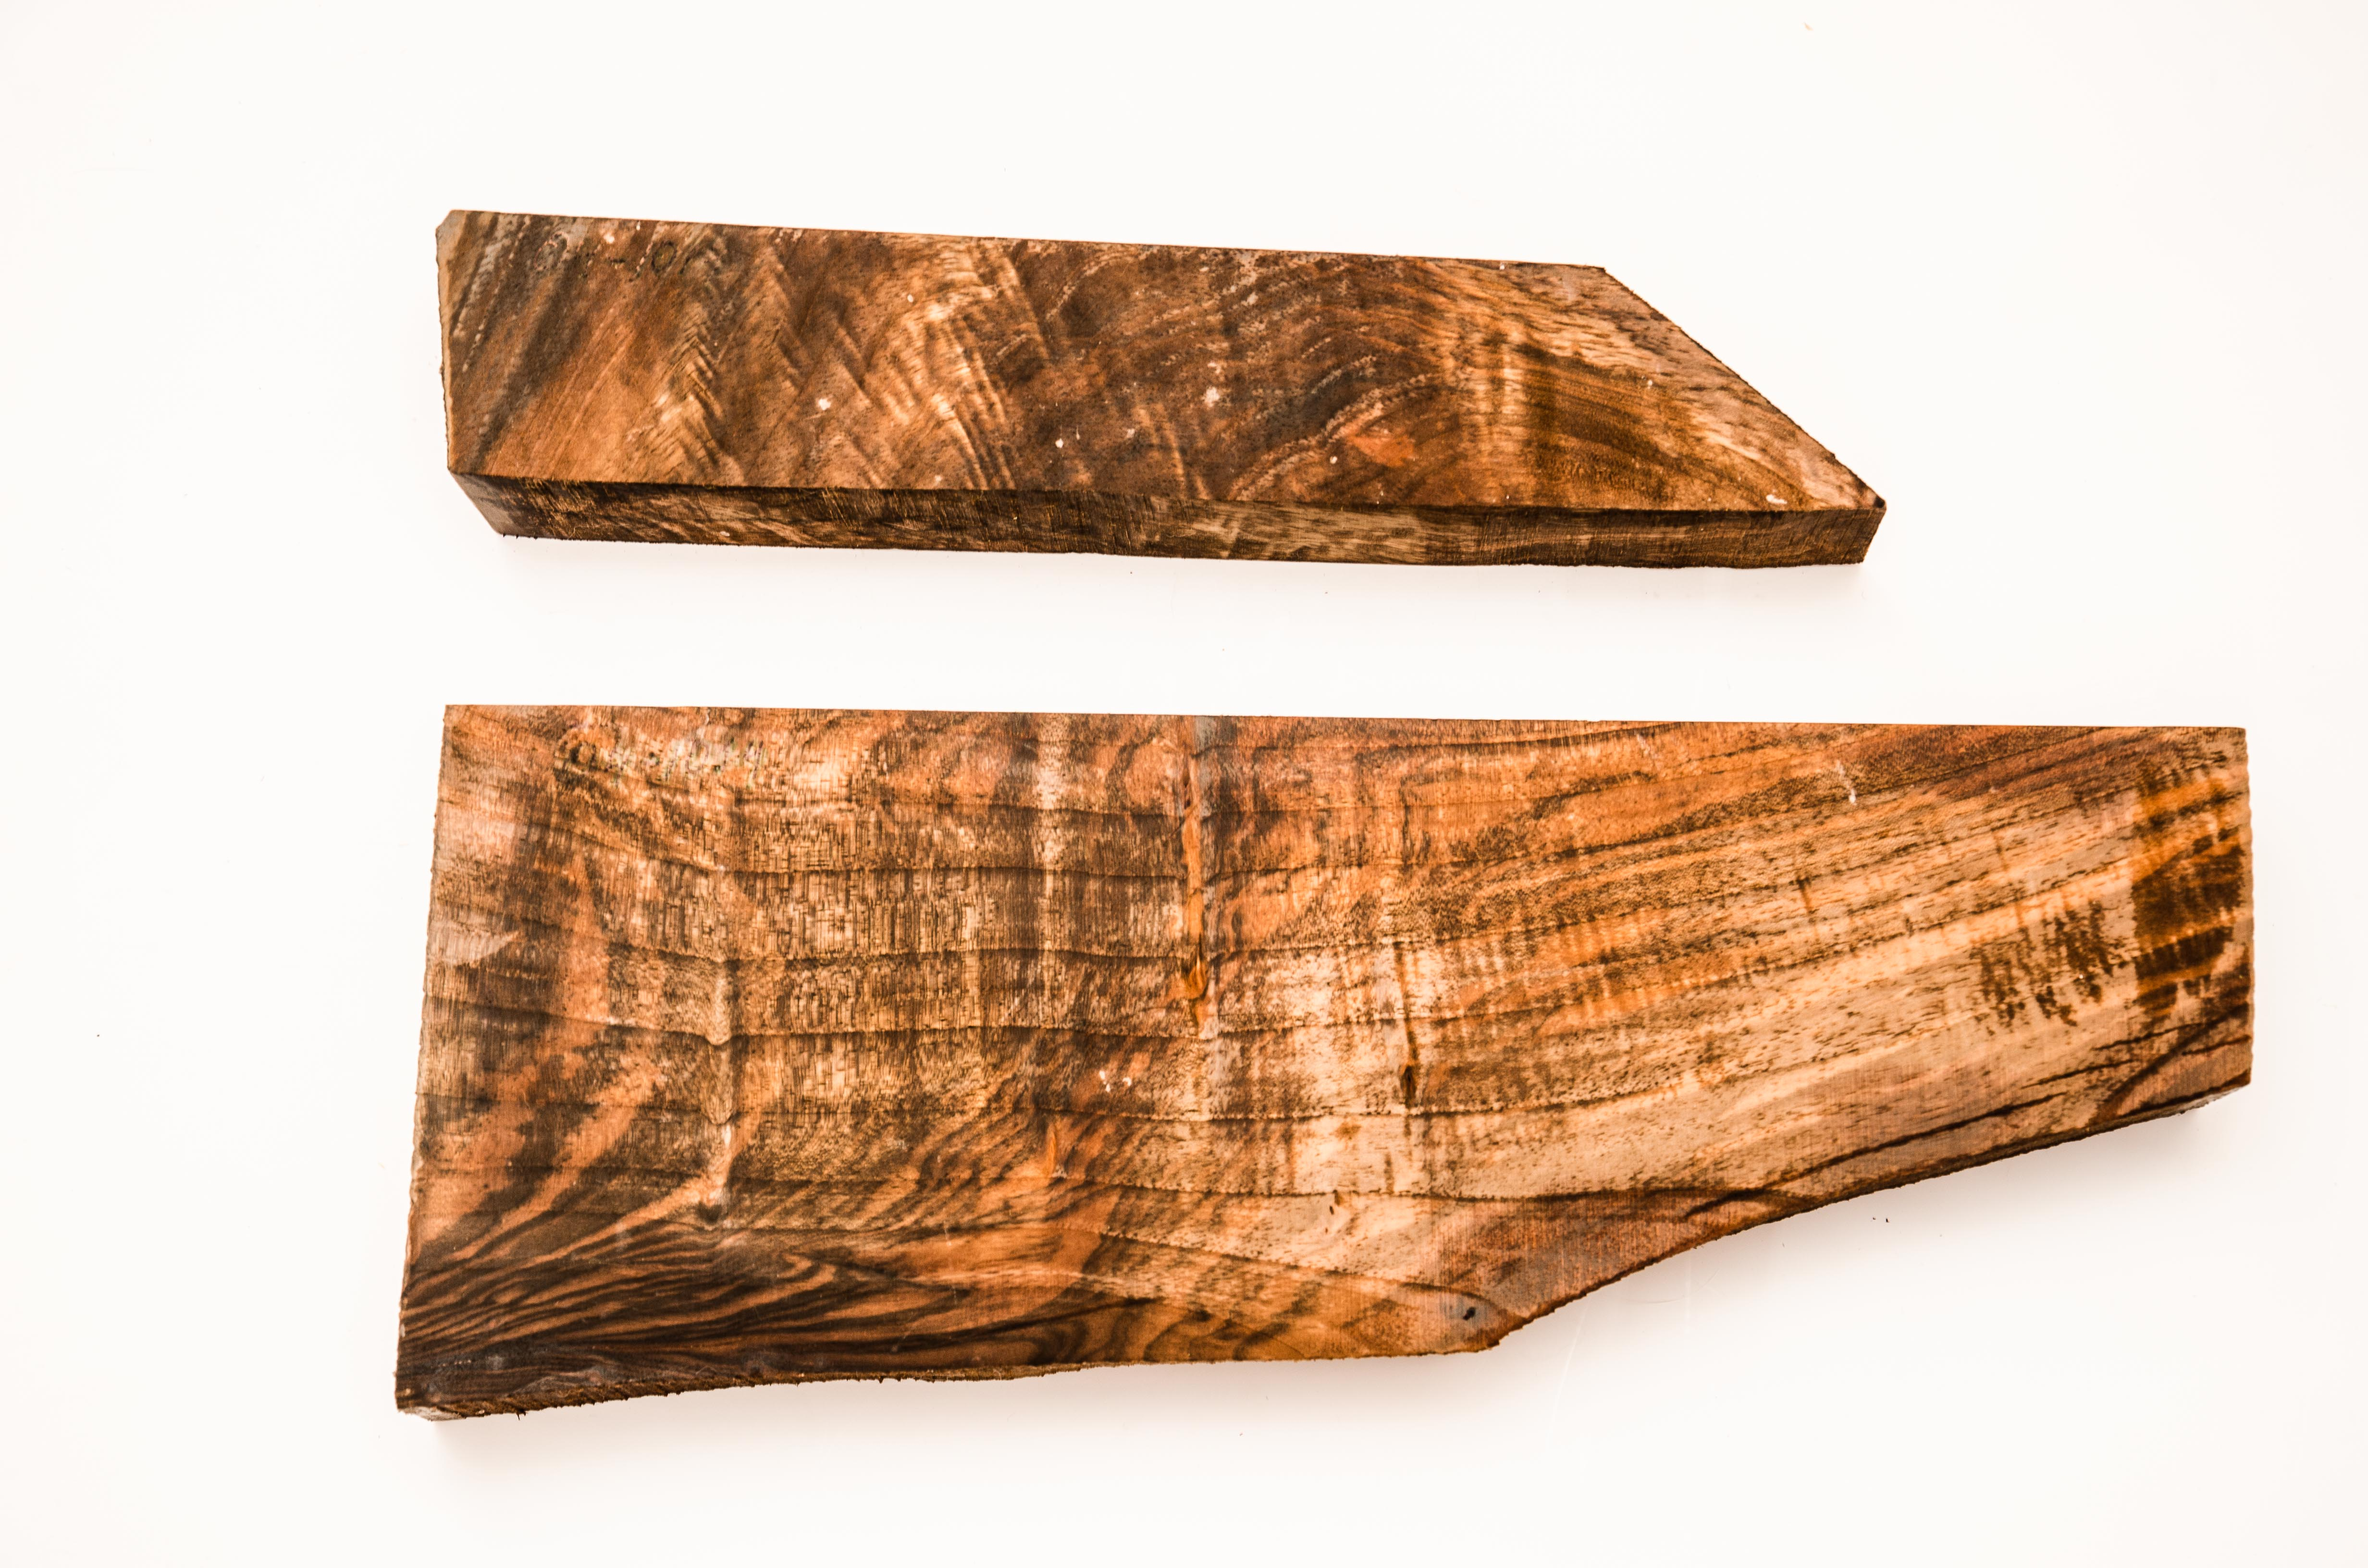 walnut_stock_blanks_for_guns_and_rifles-0374